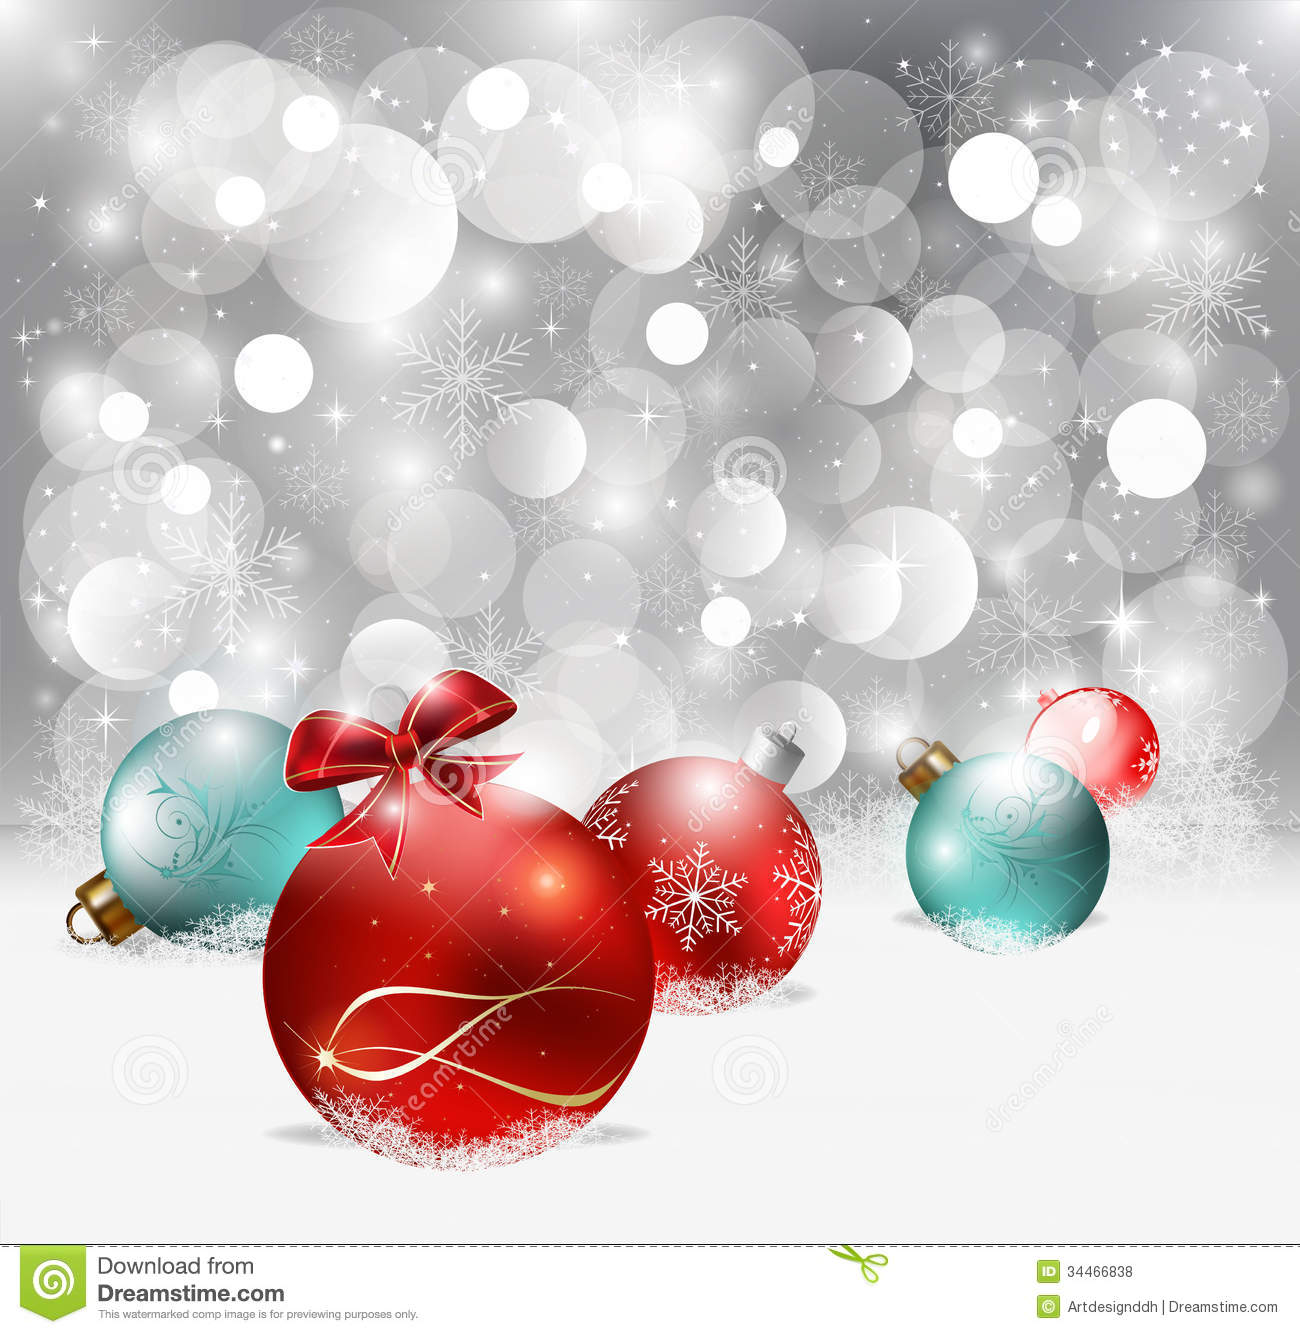 18 Christmas Clipart Backgrounds ClipartLook 1300x1334